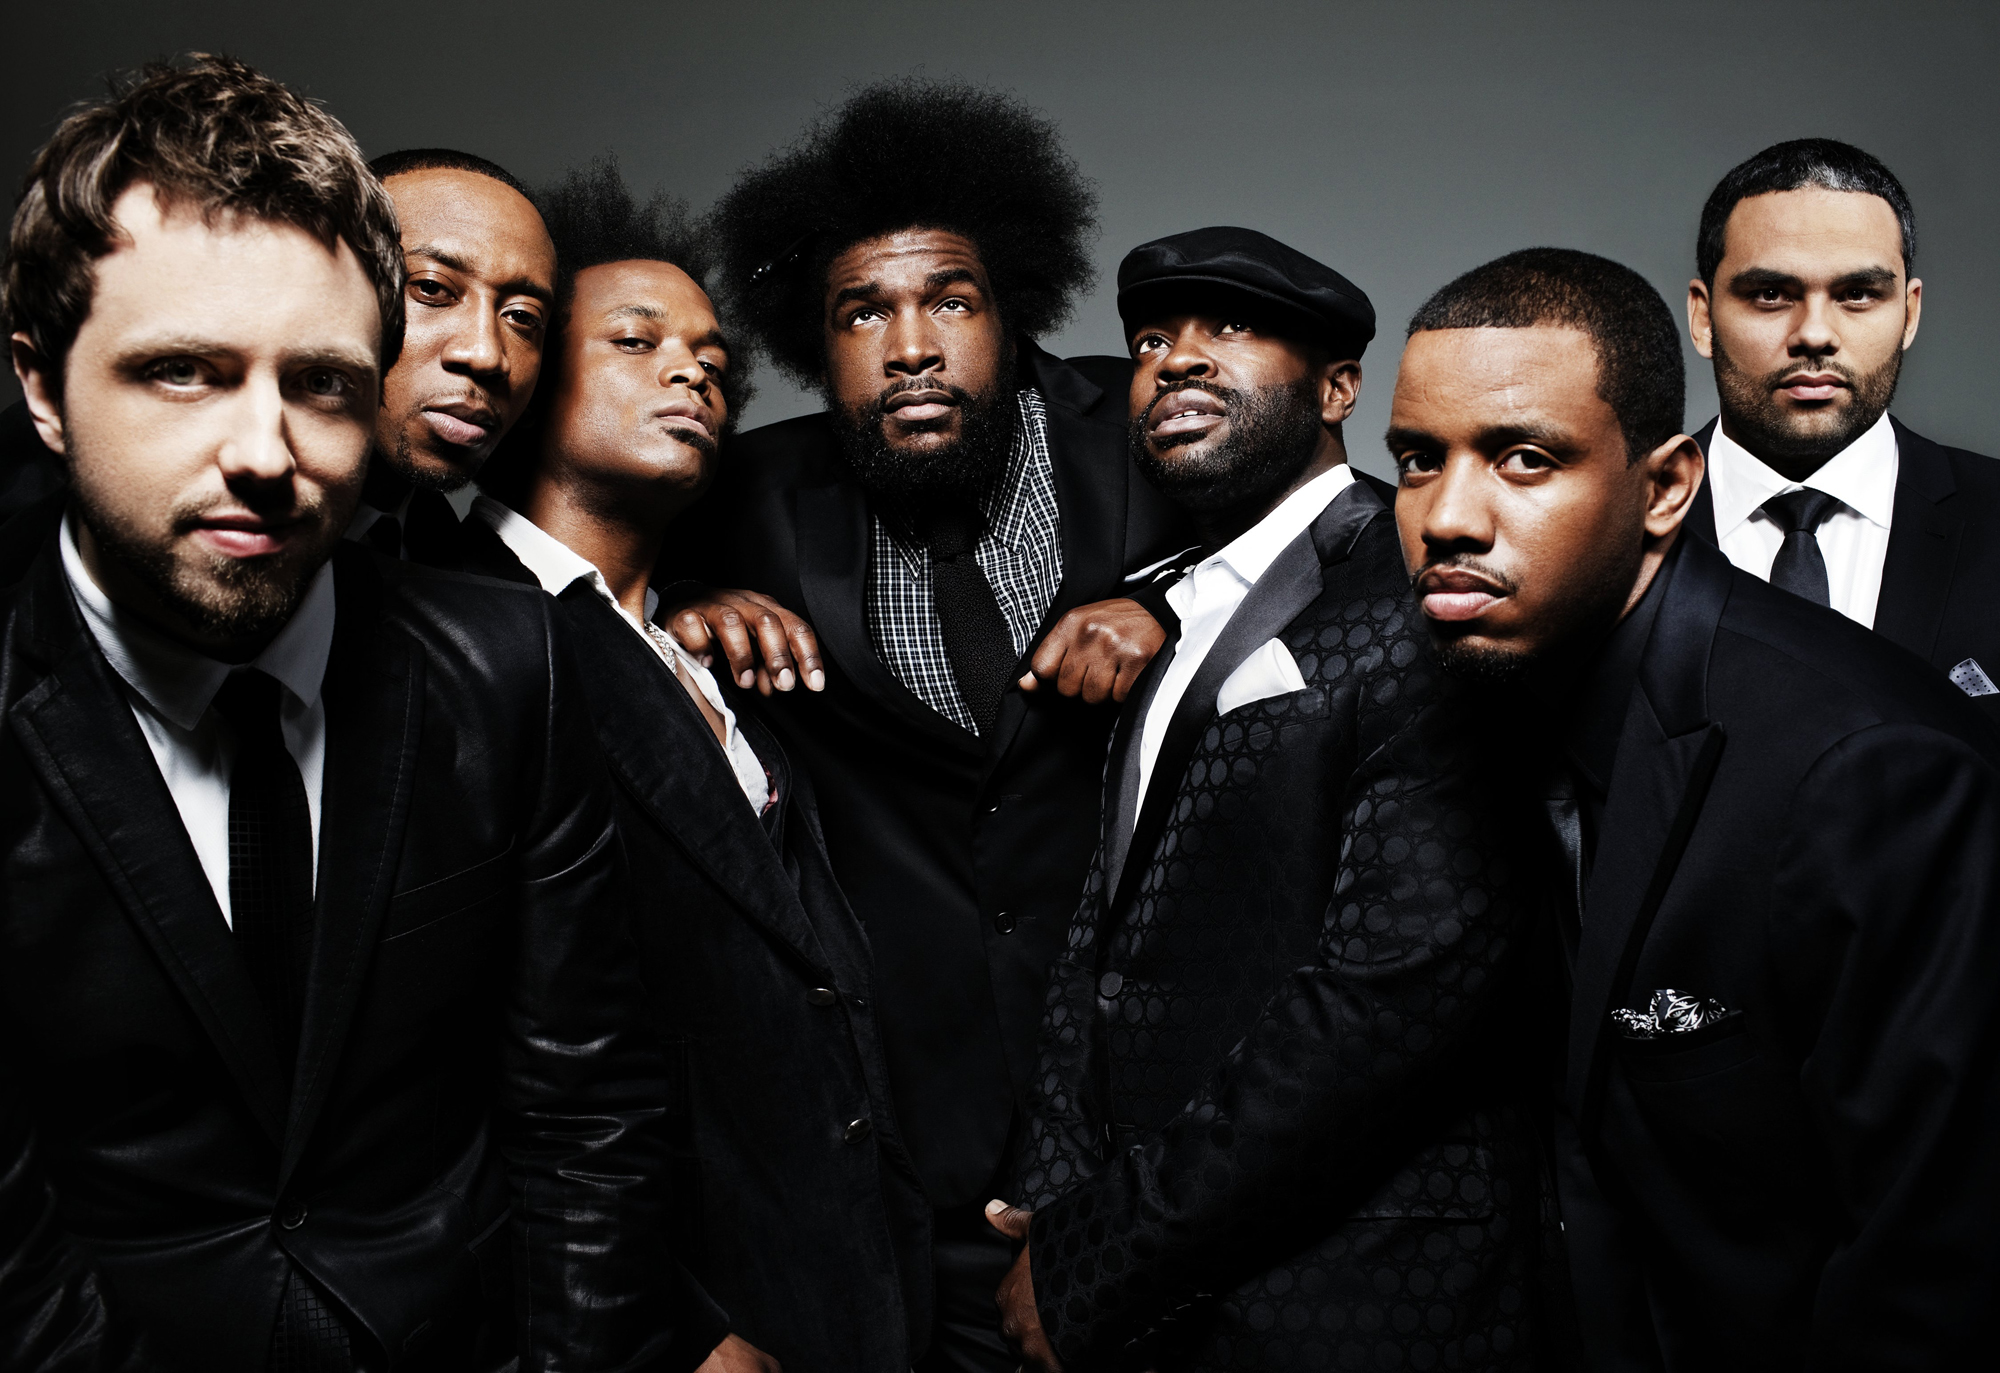 Mountain Winery Announces 2016 Season: The Roots, YES, Ziggy Marley, Boston, Lynyrd Skynyrd, Explosions in the Sky